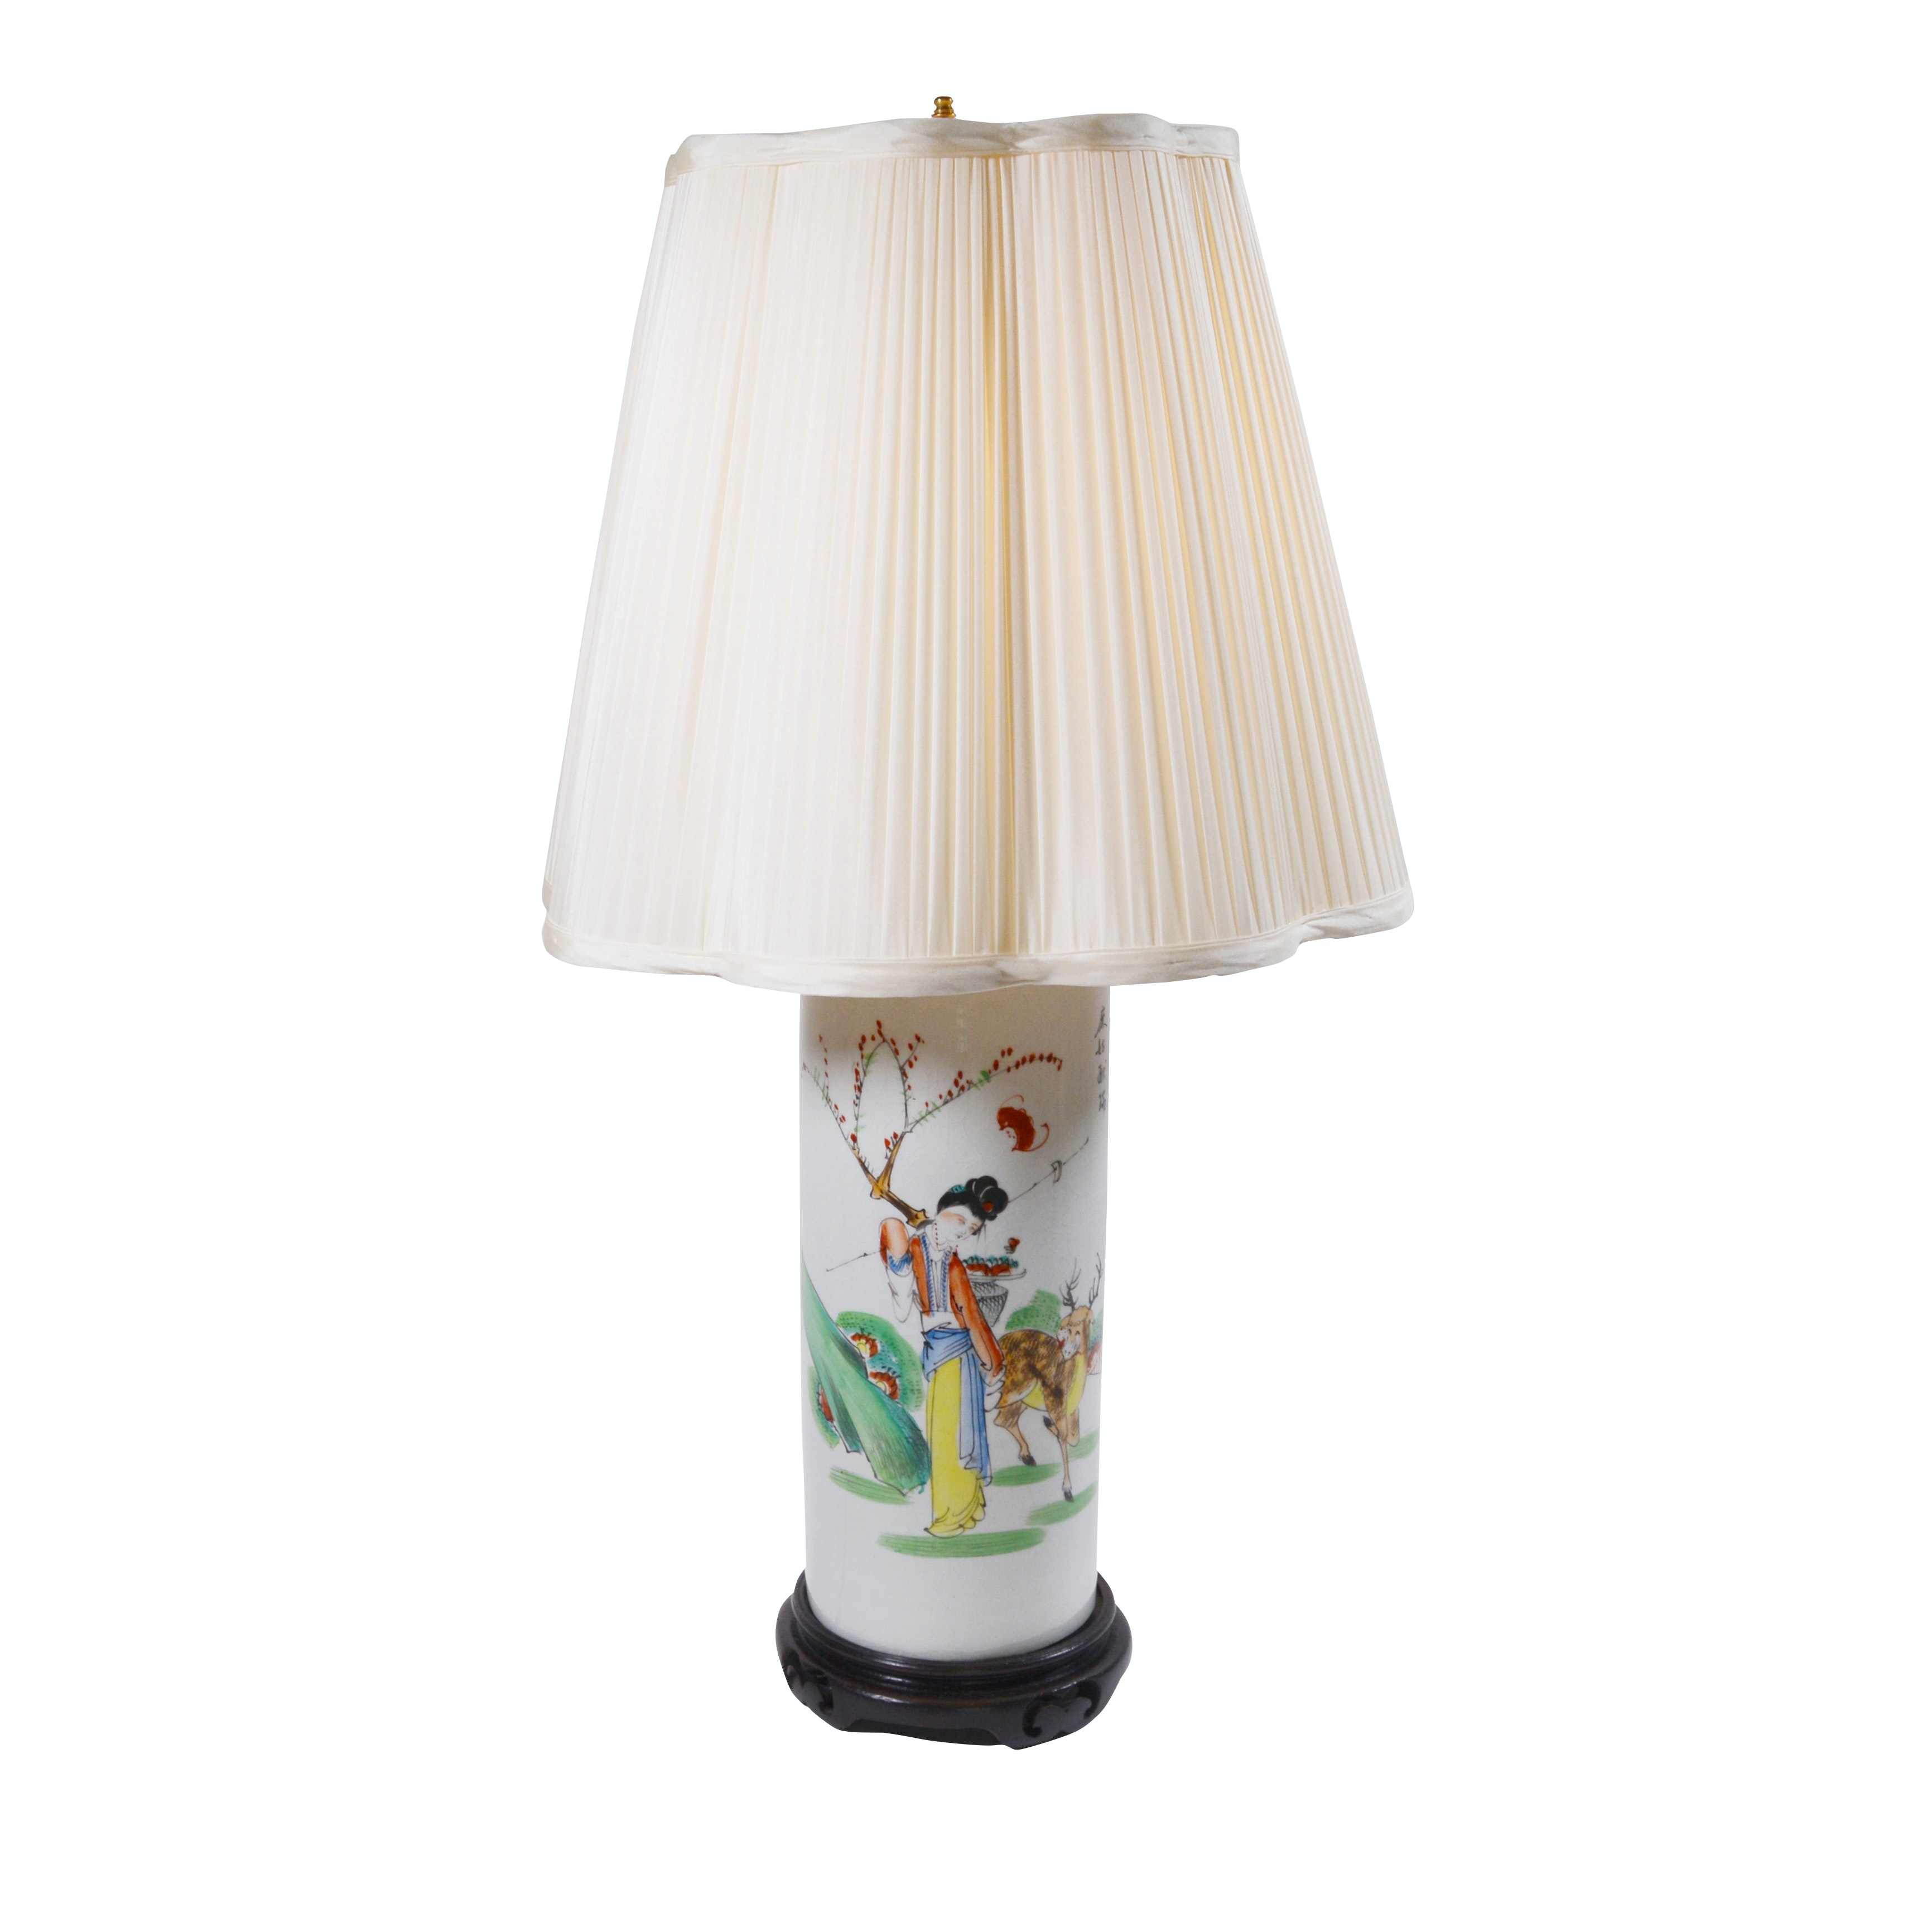 Chinese Painted Porcelain Table Lamp